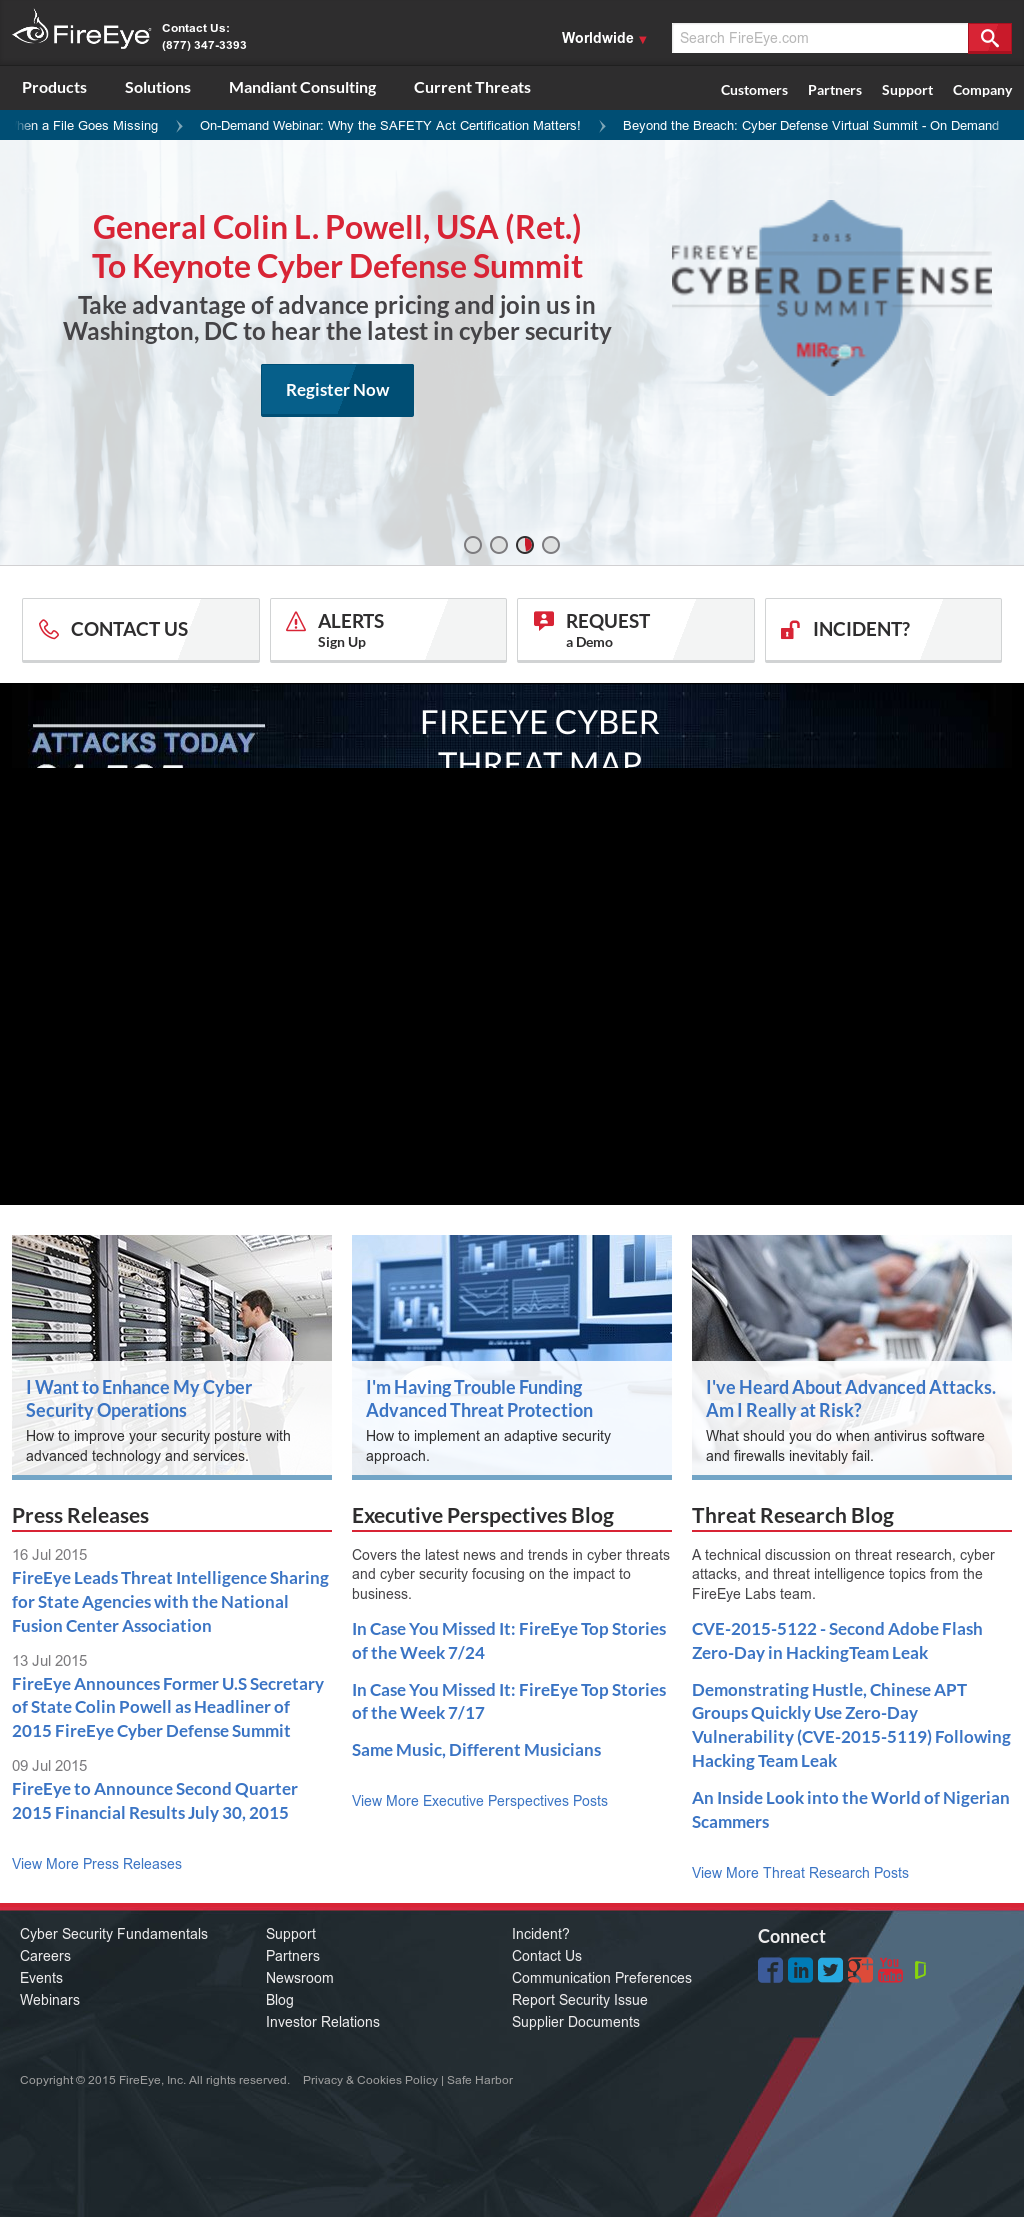 FireEye Competitors, Revenue and Employees - Owler Company